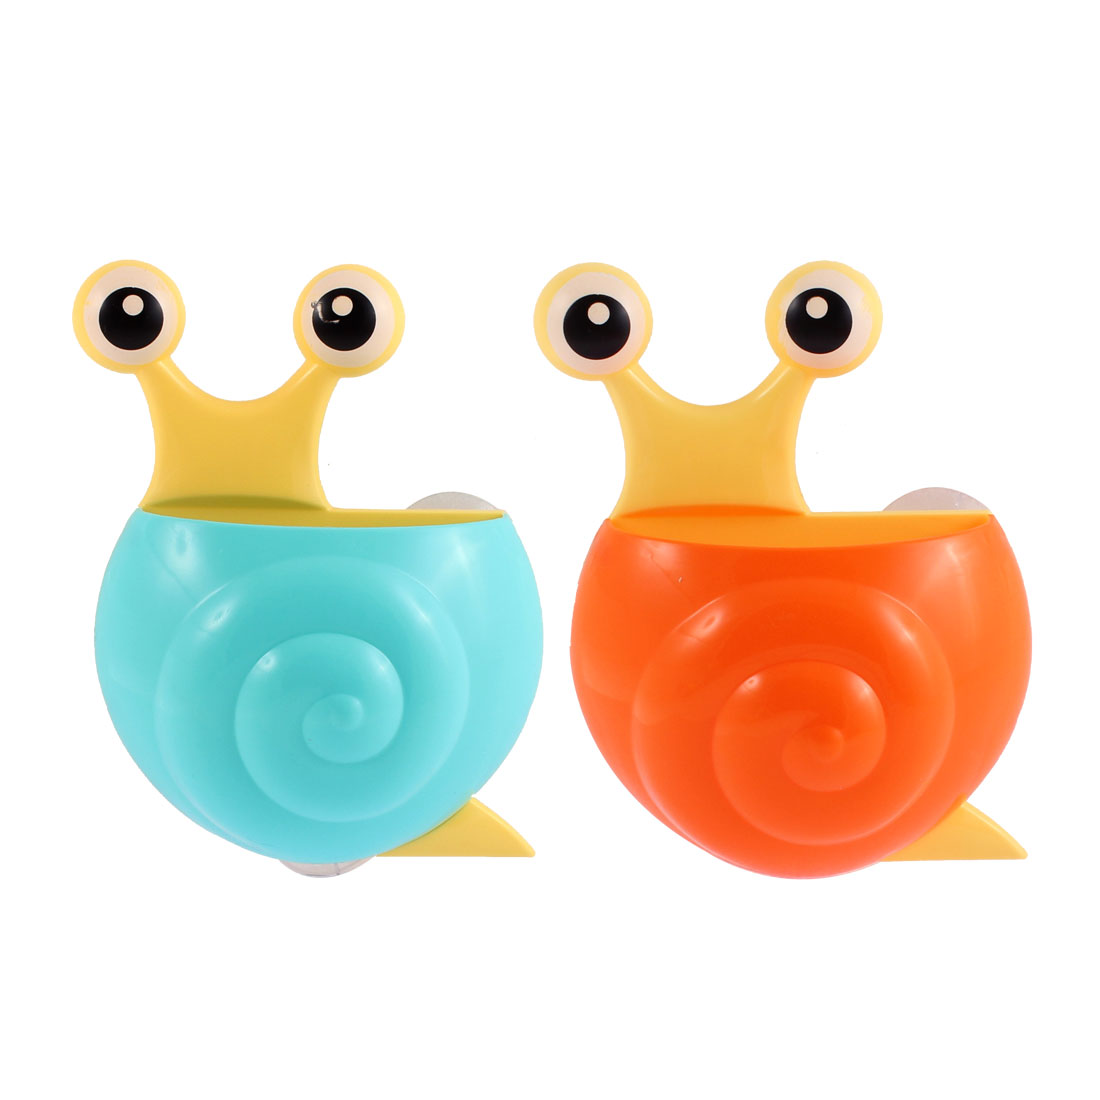 Plastic Snail Design Suction Cup Toothbrush Holder Cyan Orange 2pcs